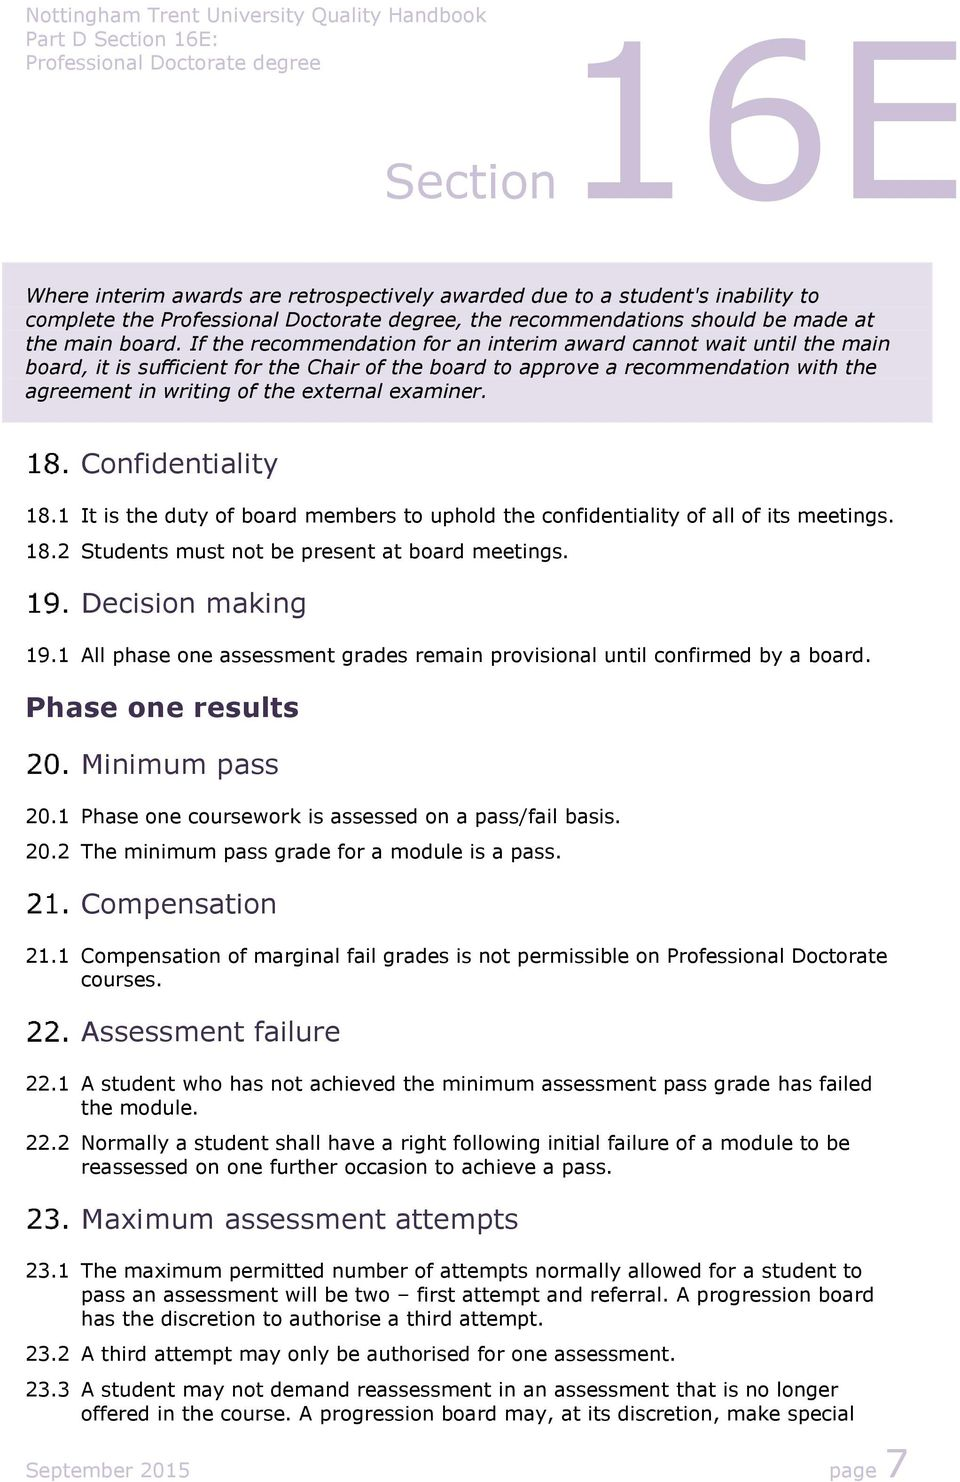 examiner. Confidentiality 18.1 It is the duty of board members to uphold the confidentiality of all of its meetings. 18.2 Students must not be present at board meetings. Decision making 19.